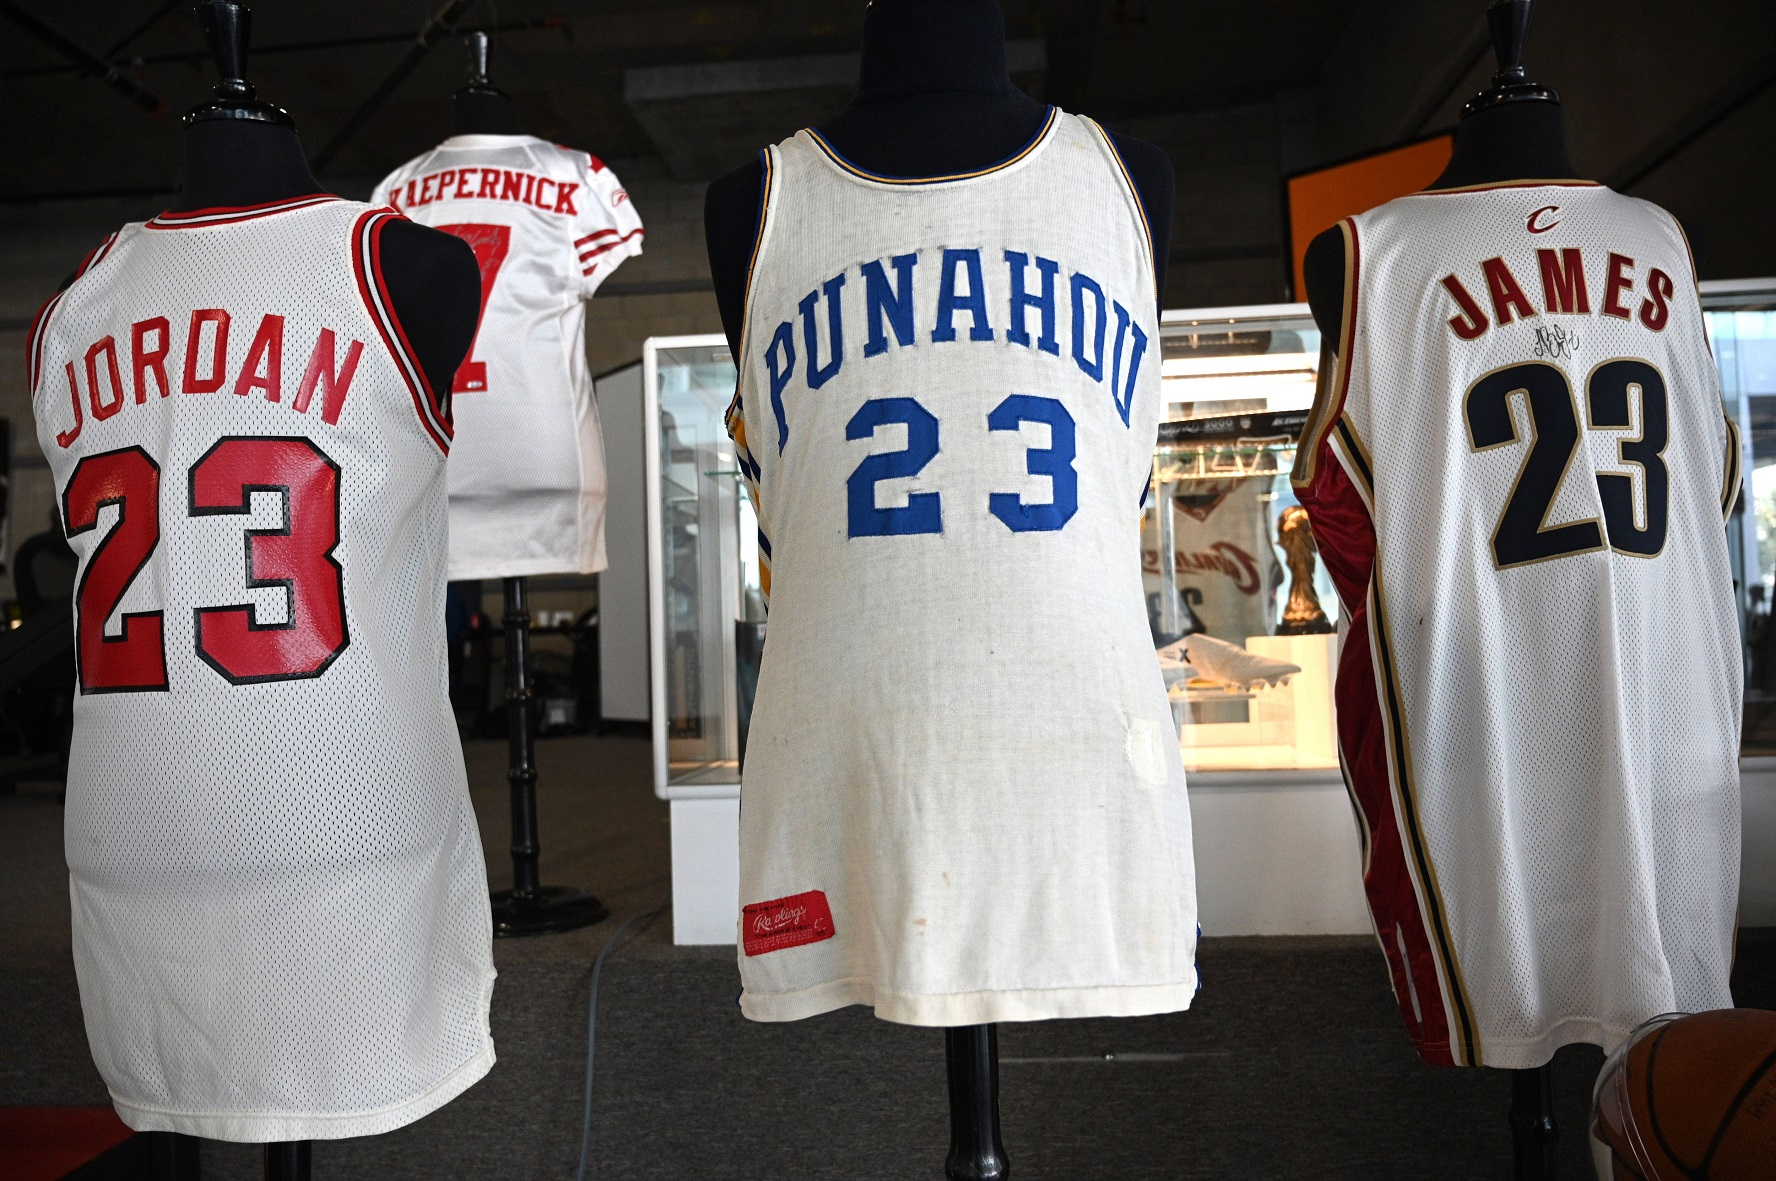 Barack Obama's high school jersey